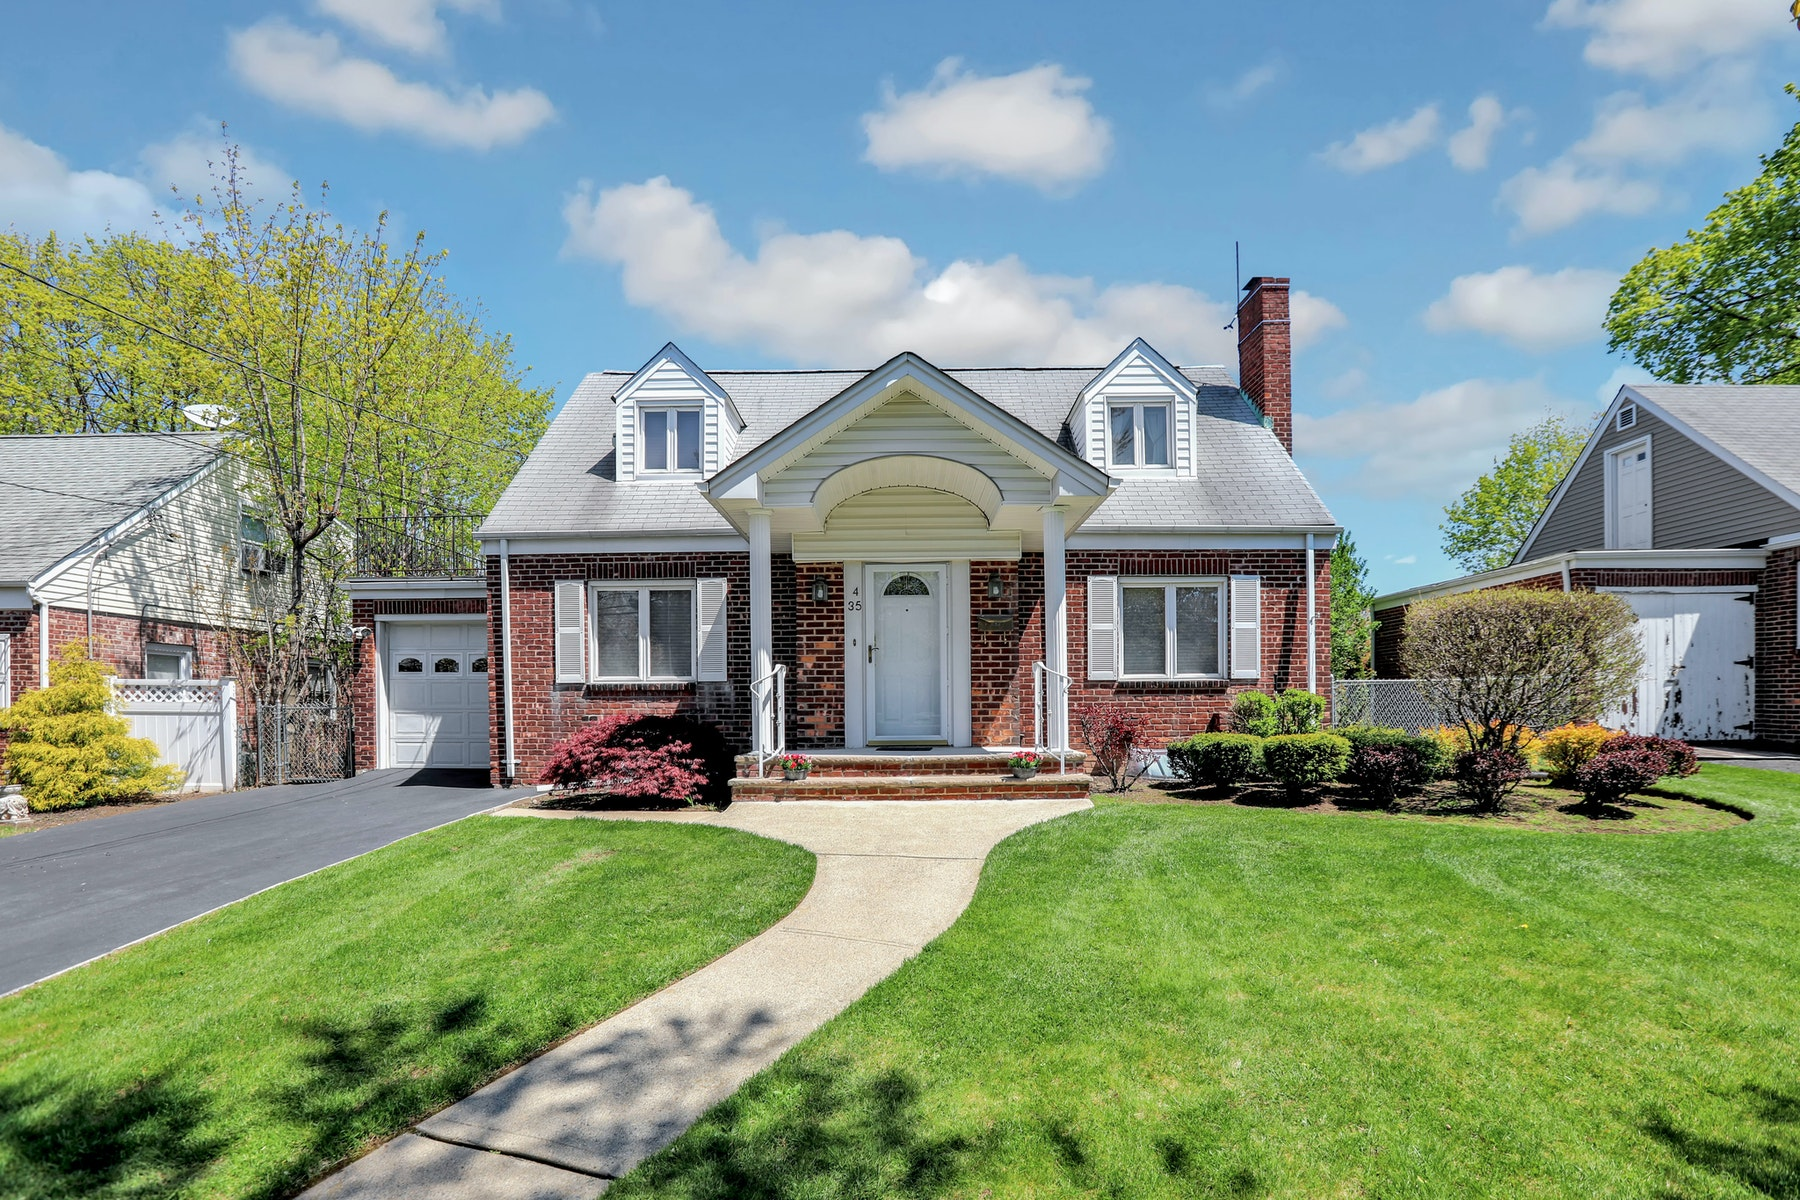 Single Family Homes for Sale at Charming and Elegant 4-35 17th Street Fair Lawn, New Jersey 07410 United States